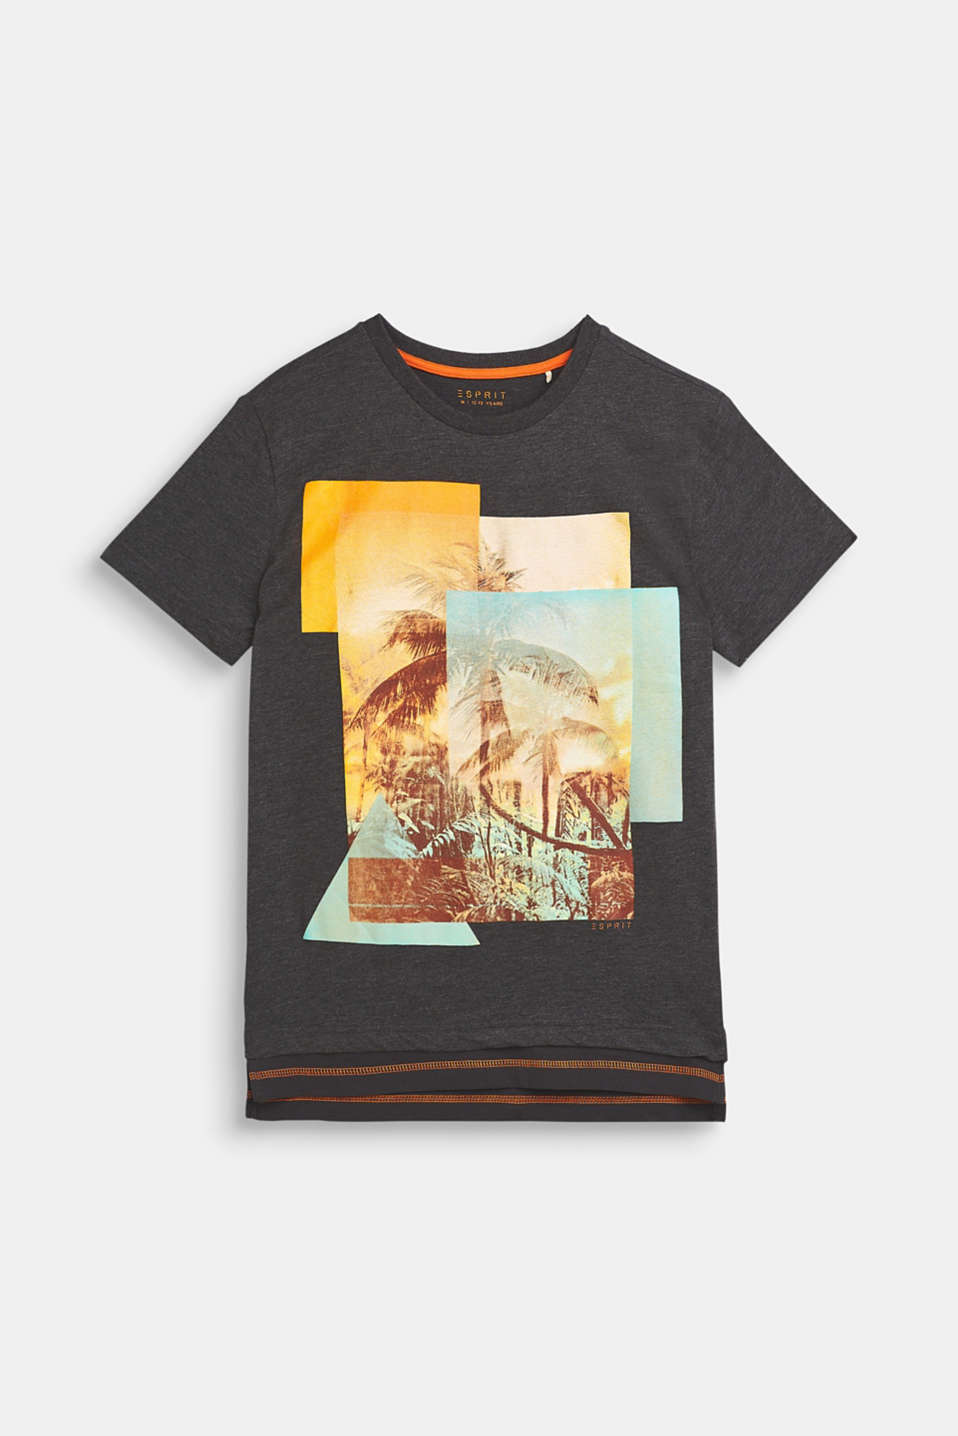 Esprit - Photo print T-shirt, blended cotton